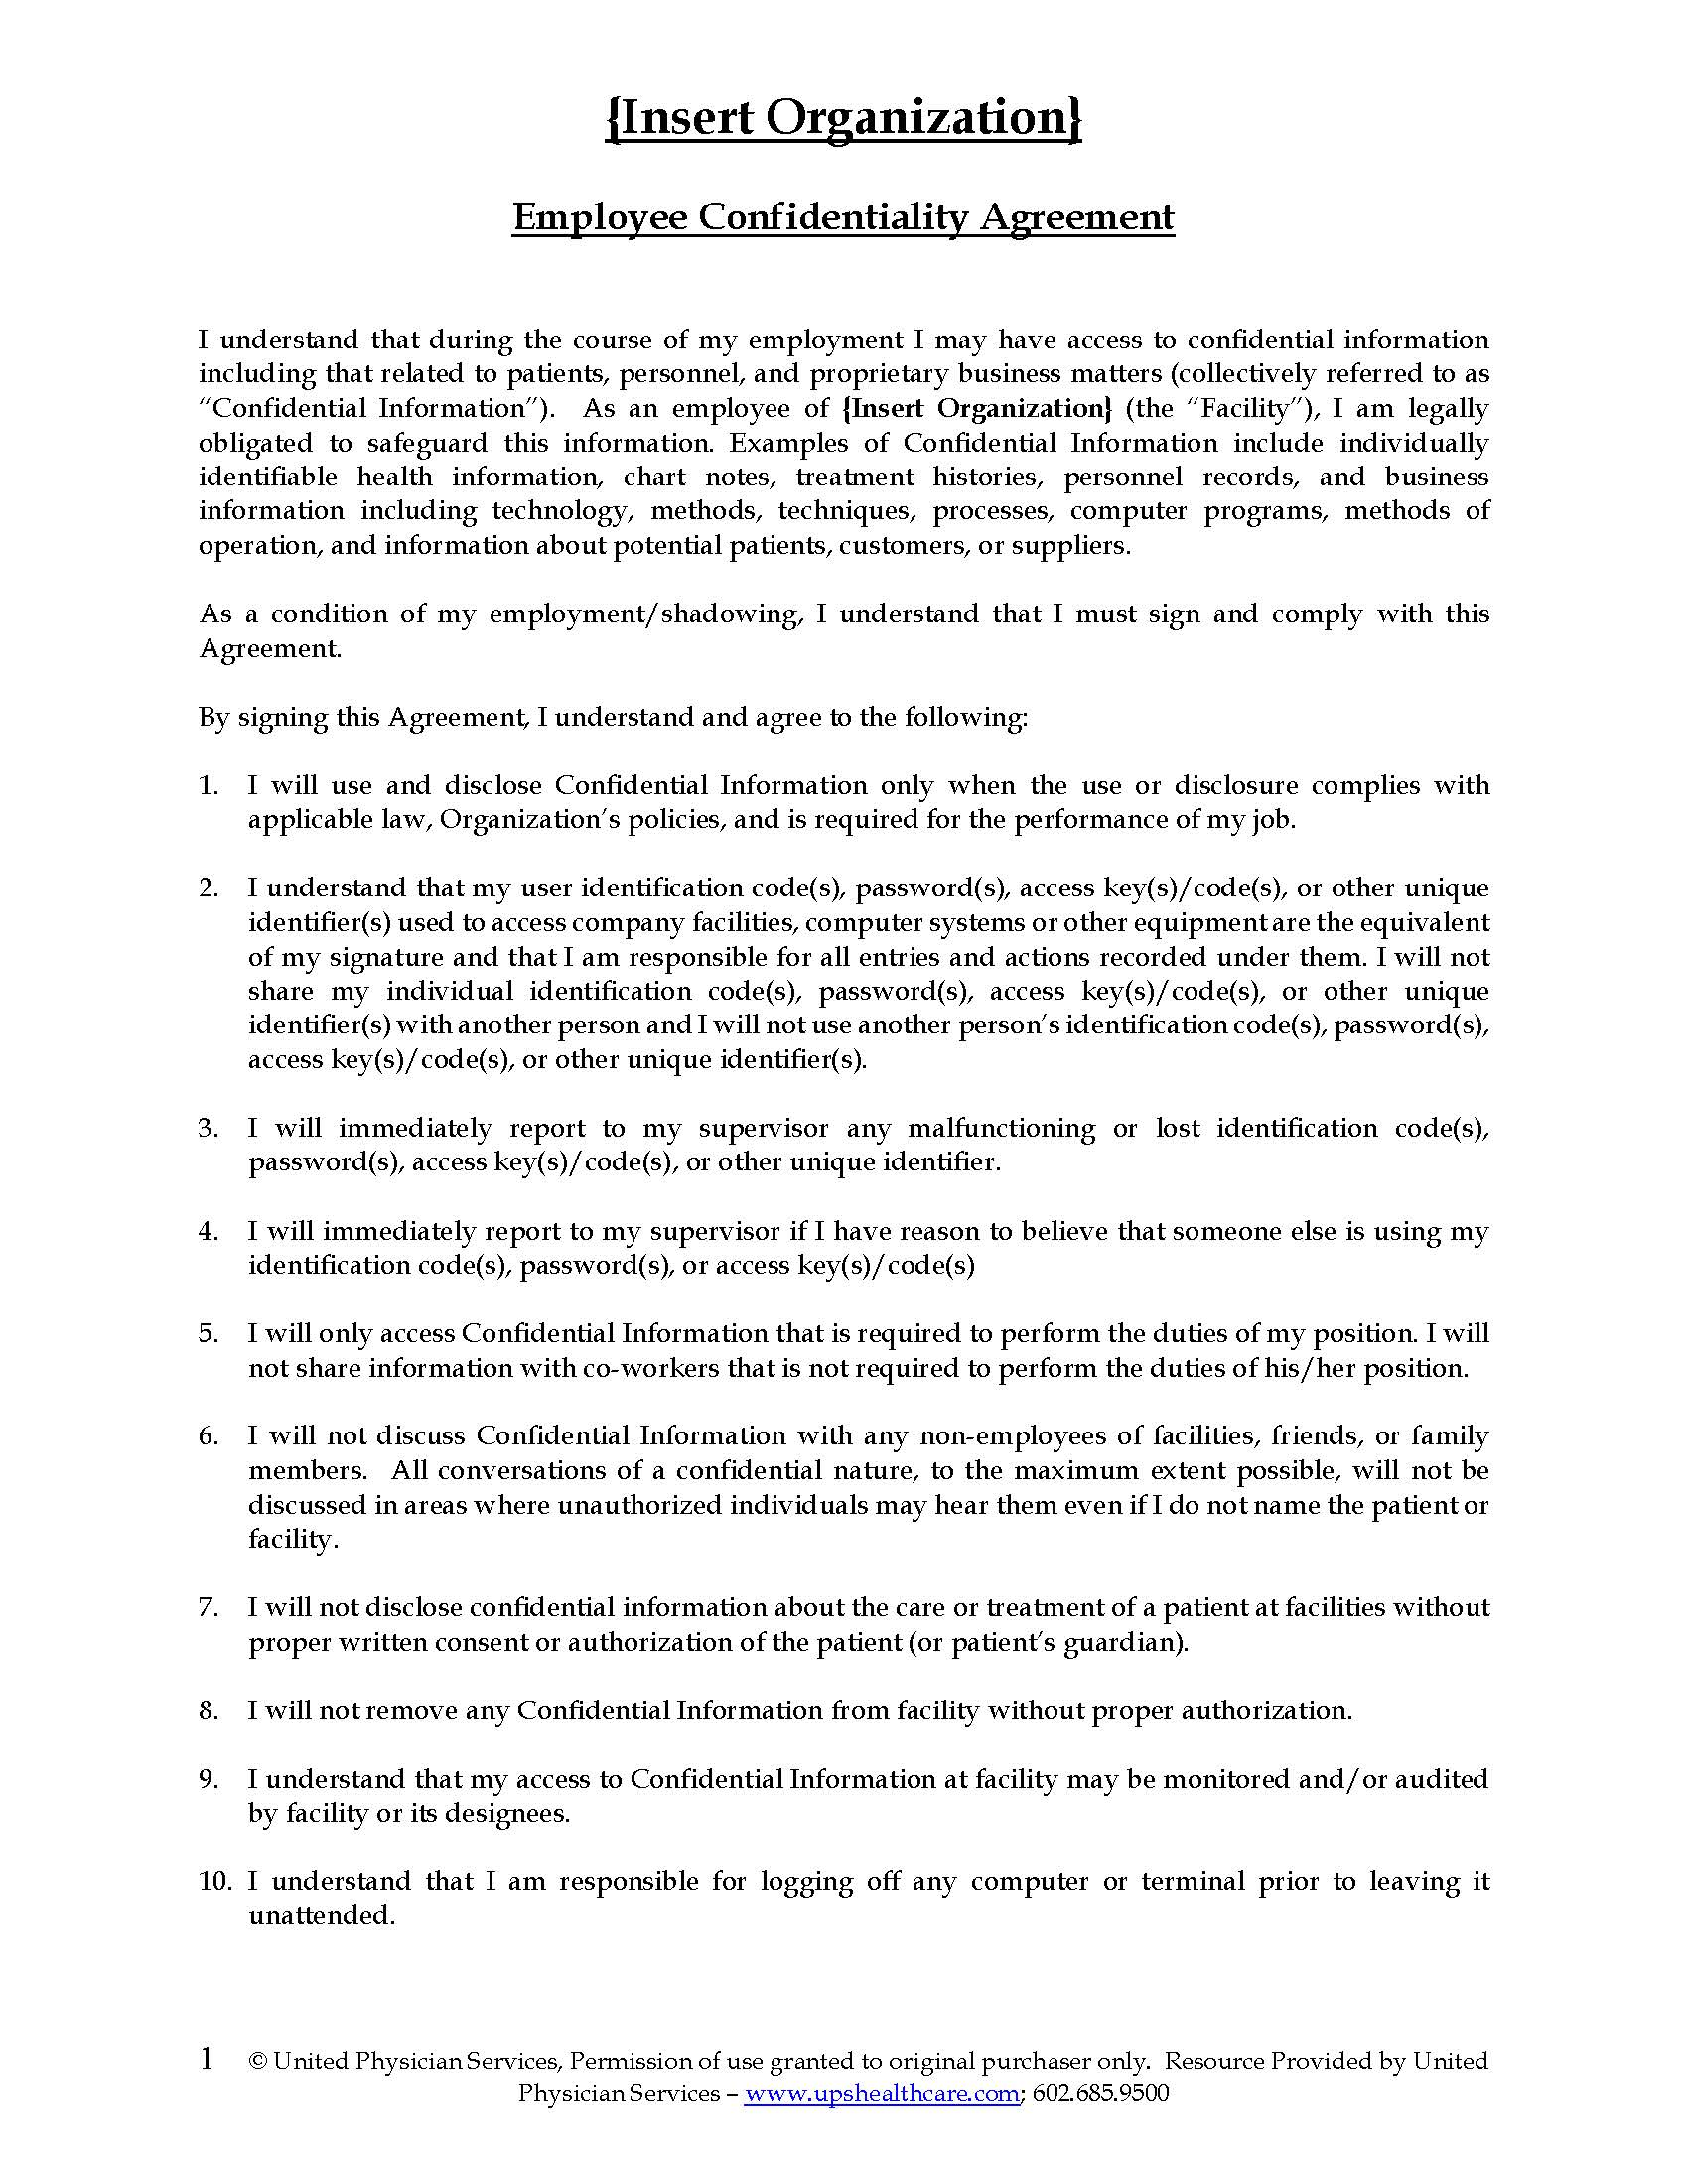 Employee Confidentiality Agreement United Physician Services